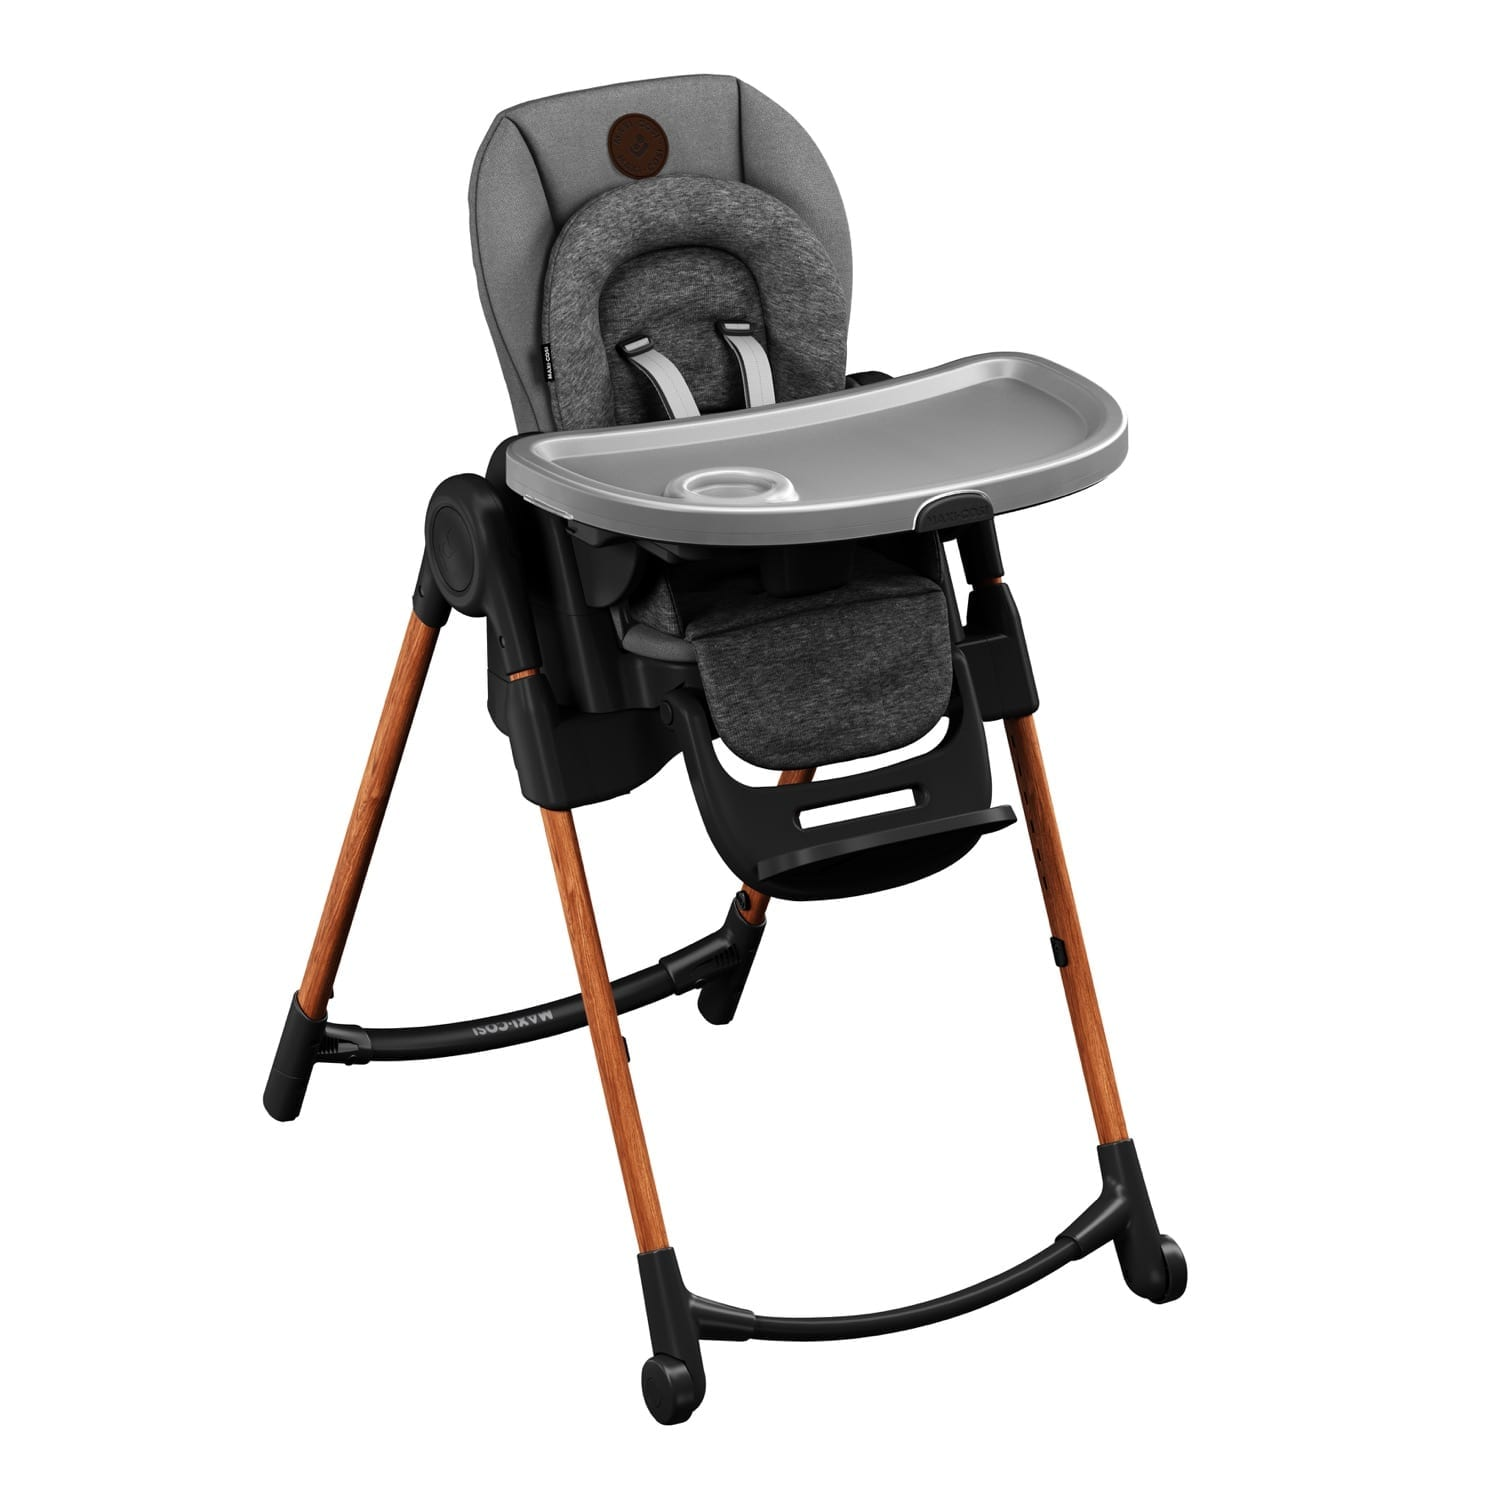 Maxi-Cosi Minla 6-in-1 Chair – Essential Grey product image